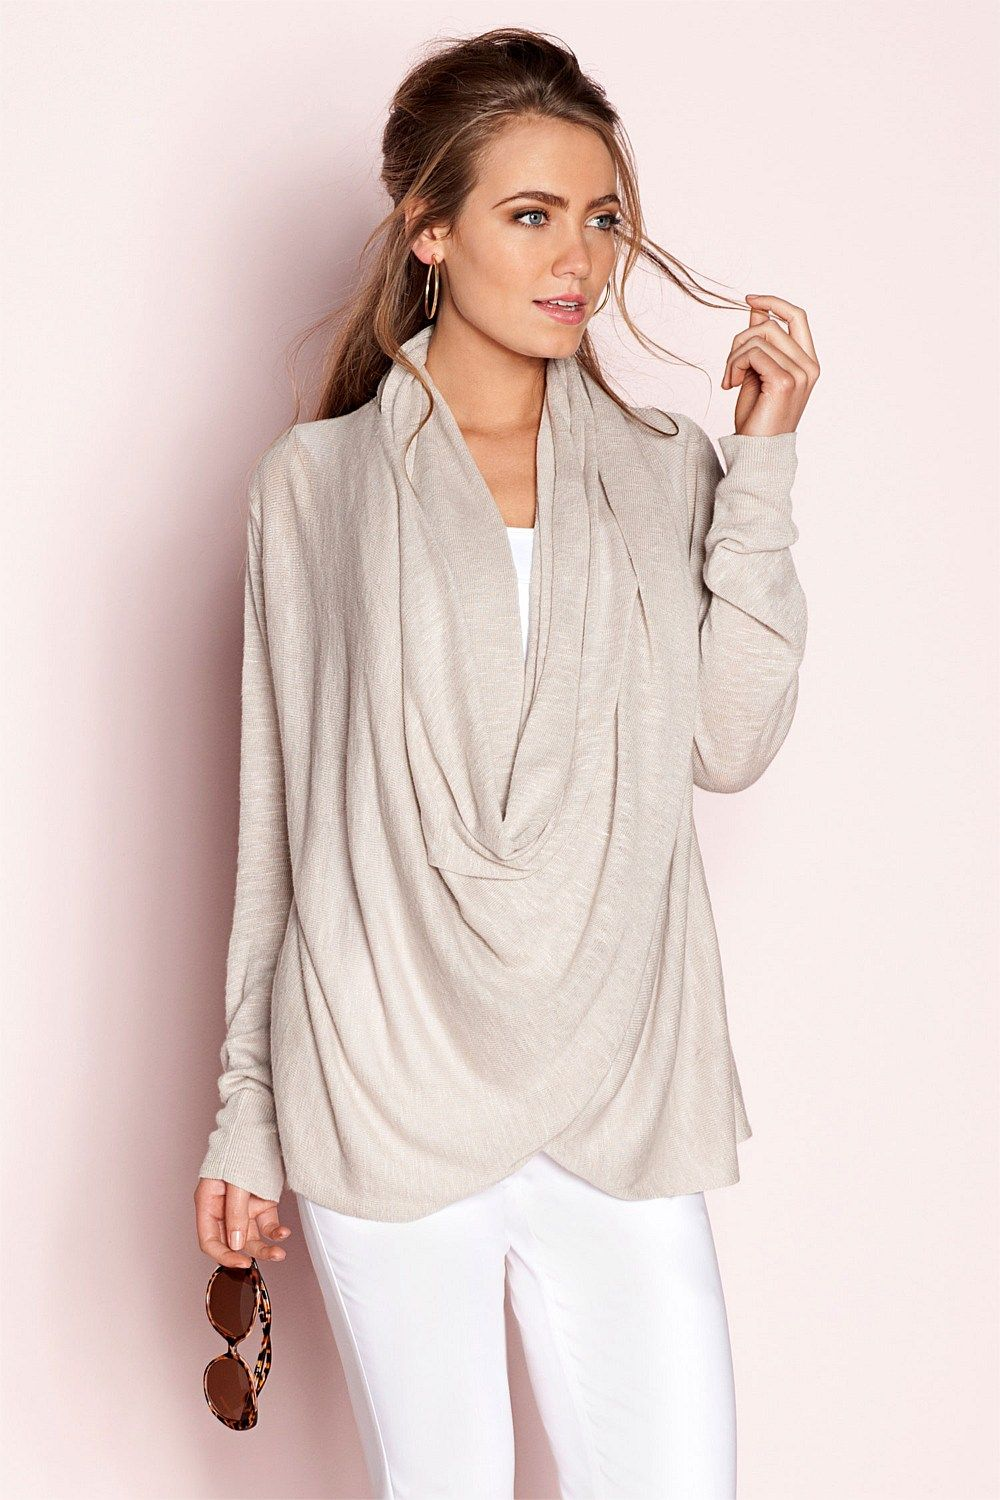 b8acdd6f685 Women s Tops - Capture Linen Wrap Knit - EziBuy Australia